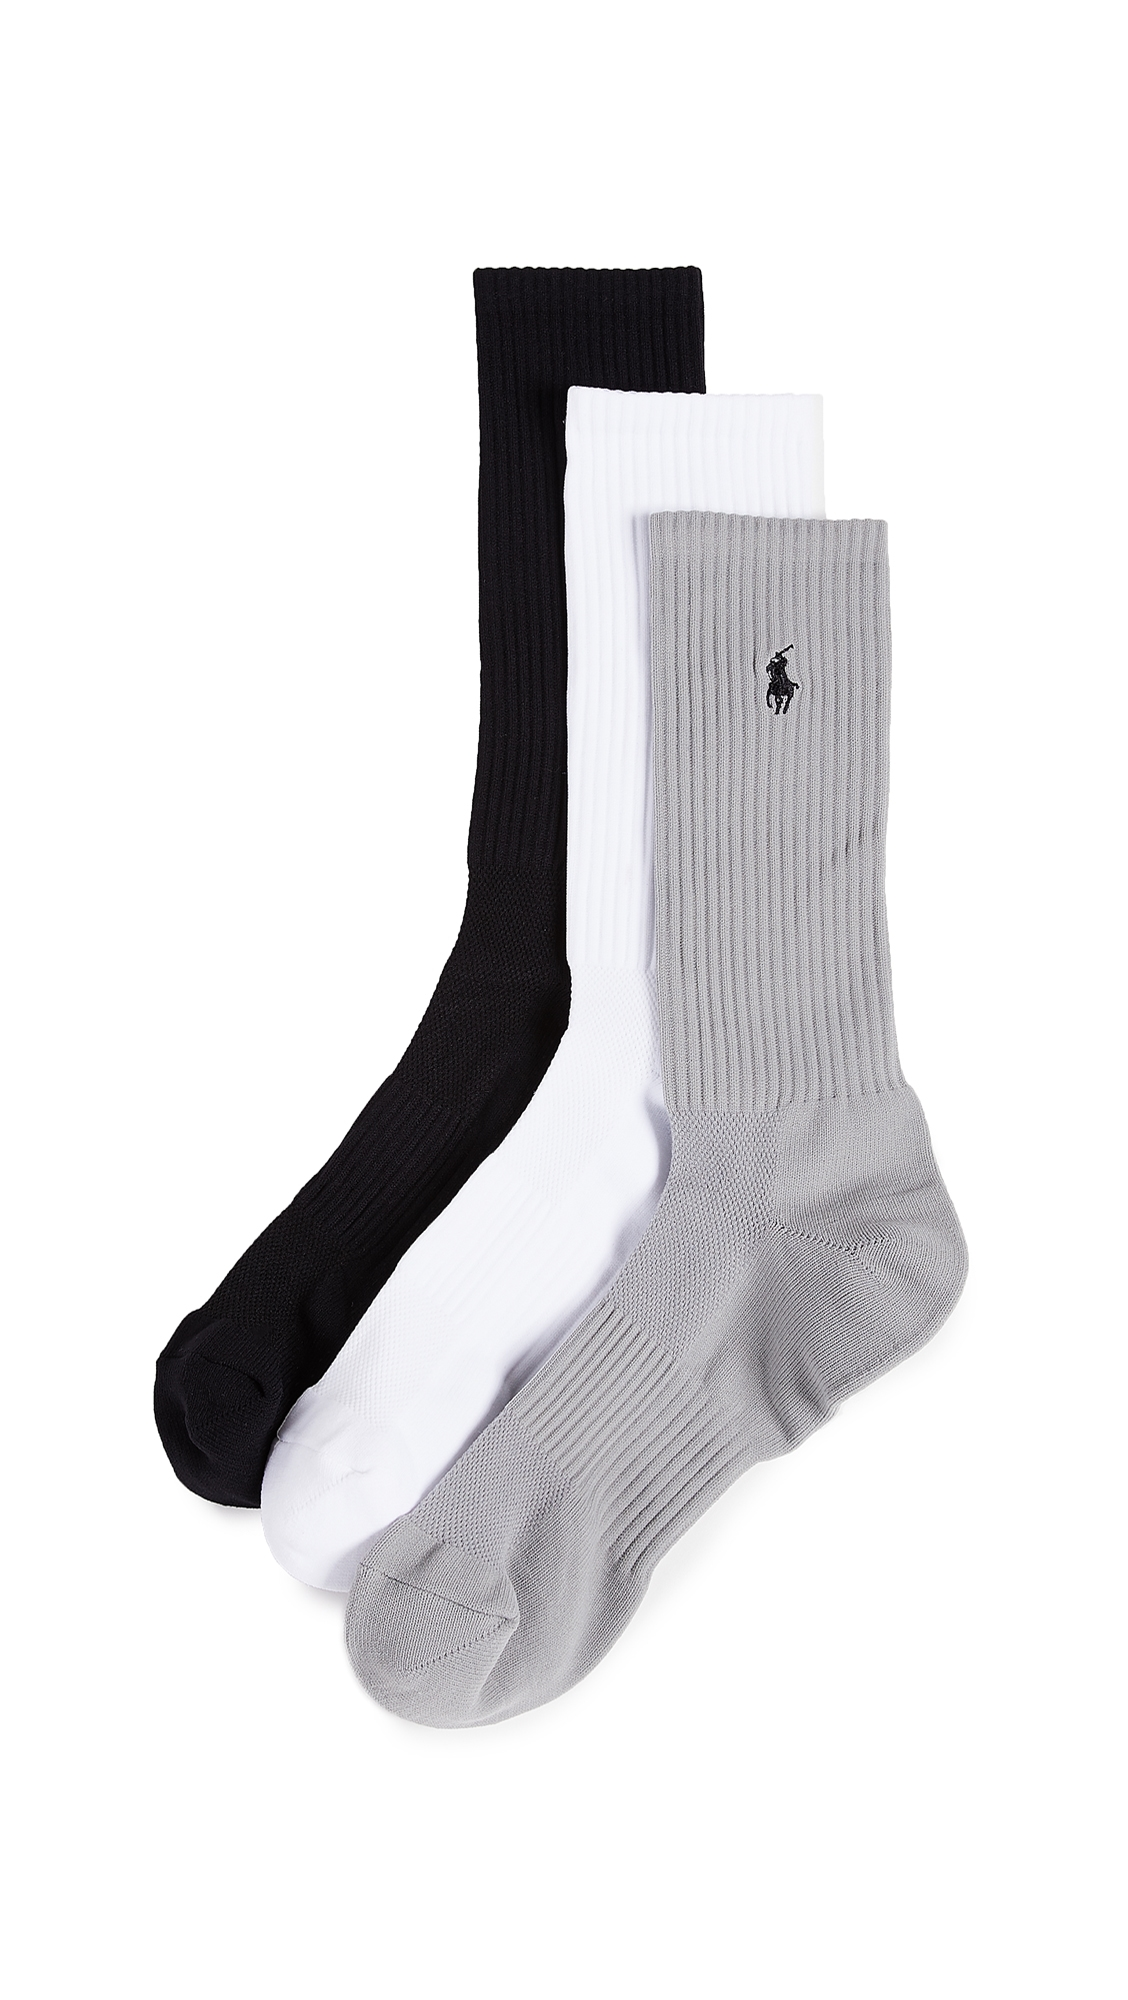 POLO RALPH LAUREN 3 PACK TECH ATHLETIC CREW SOCKS